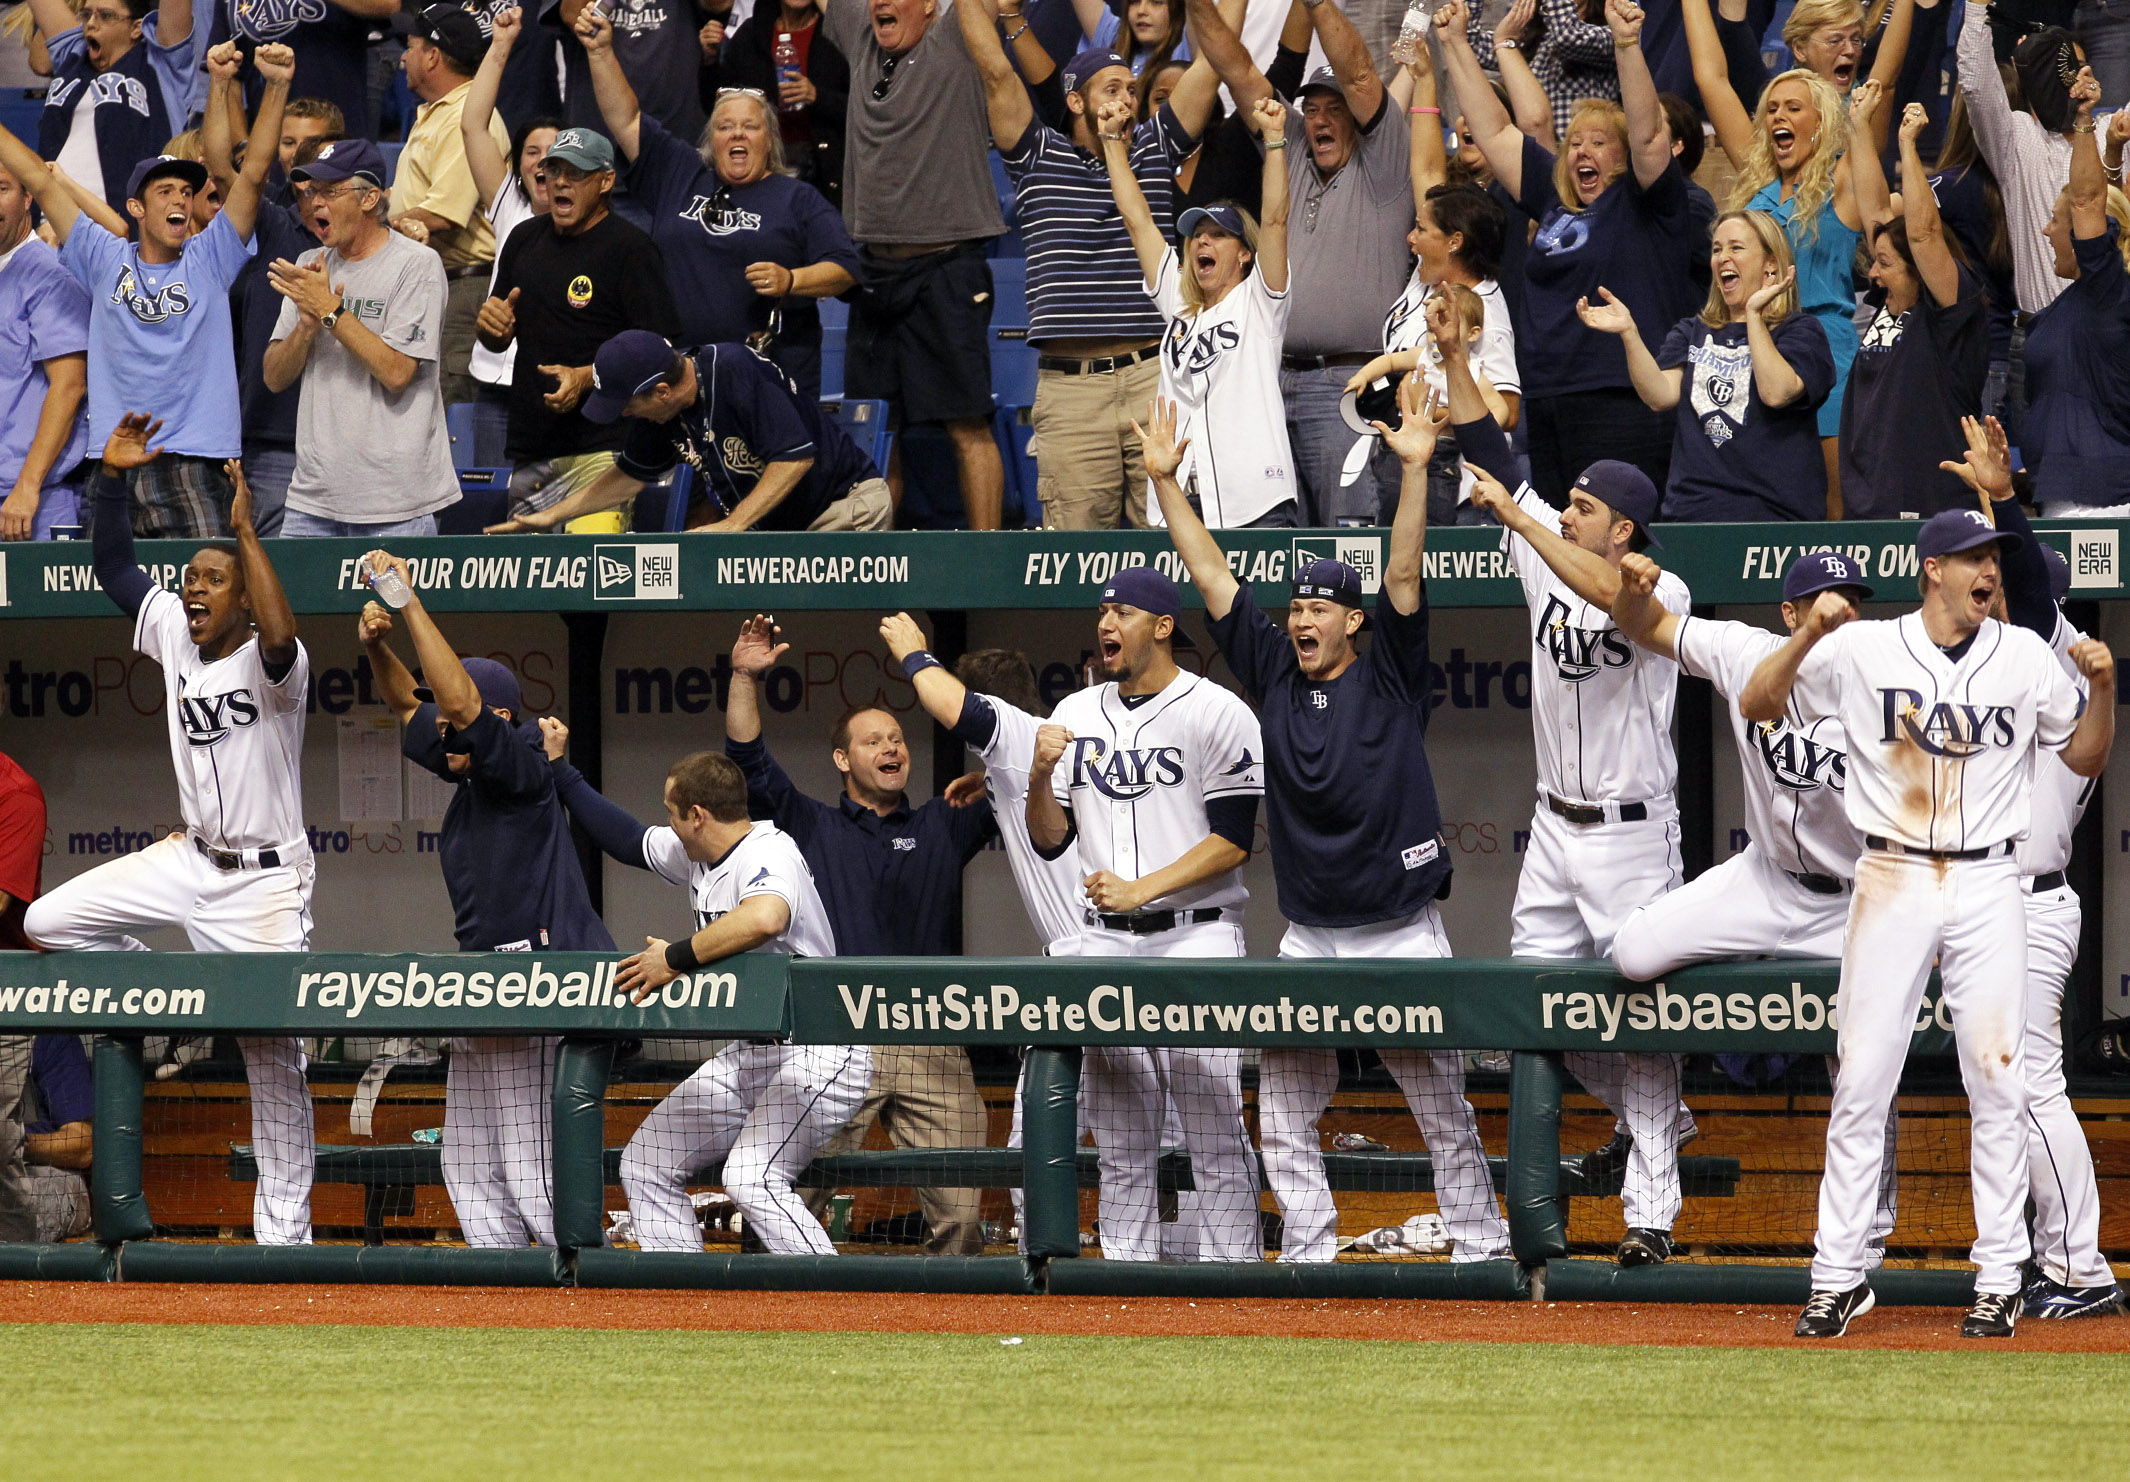 20 years of Rays: Greatest moments in franchise history ...